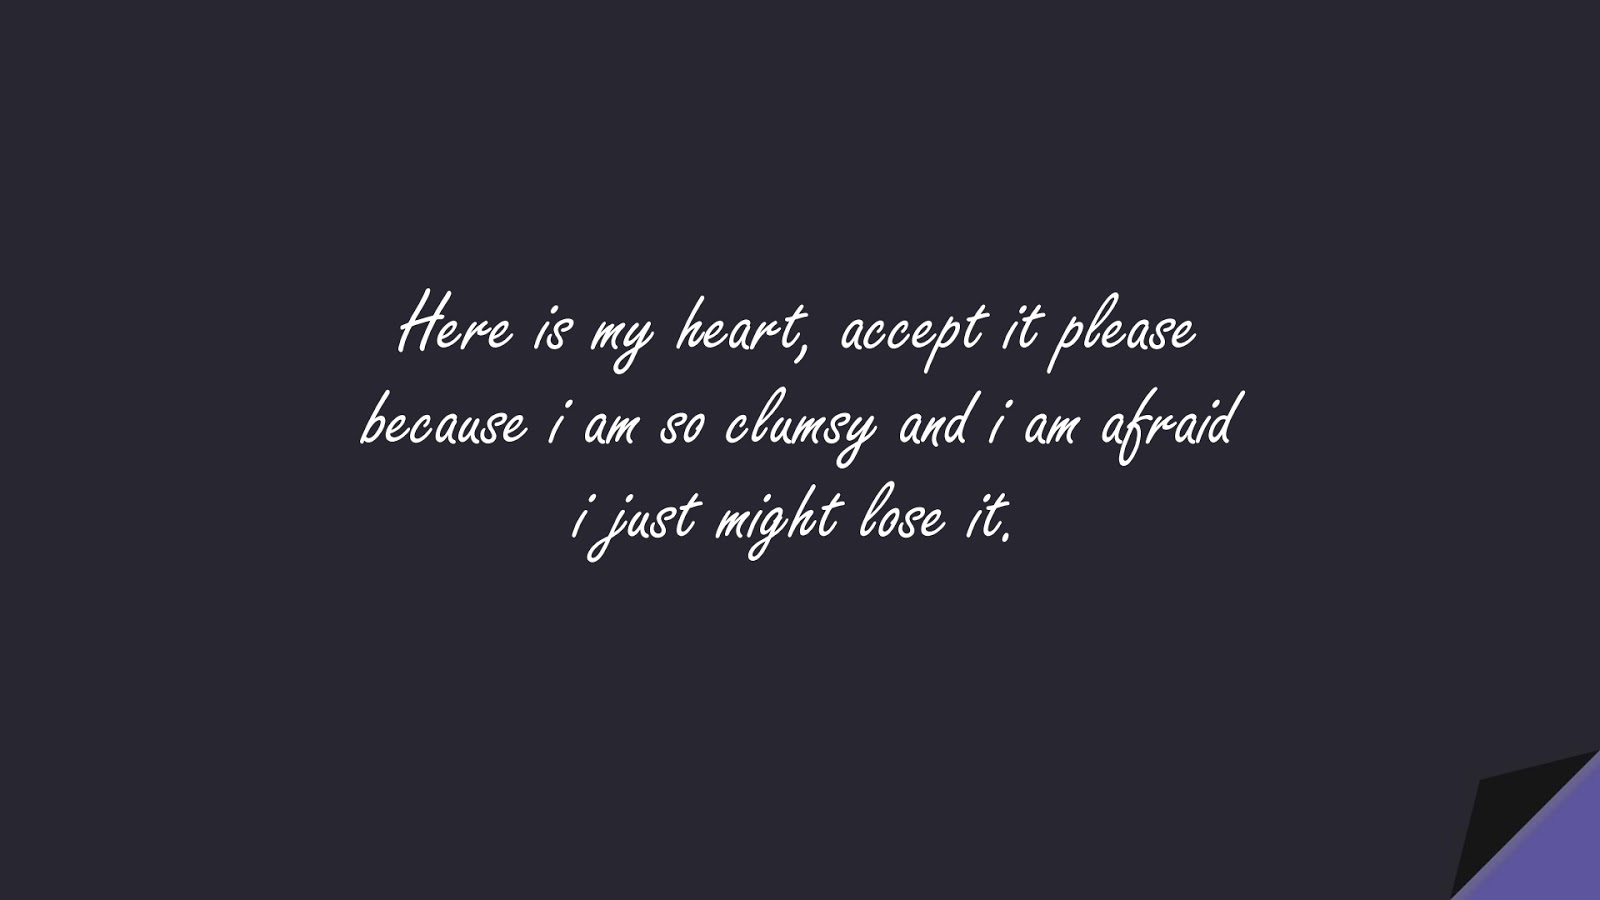 Here is my heart, accept it please because i am so clumsy and i am afraid i just might lose it.FALSE